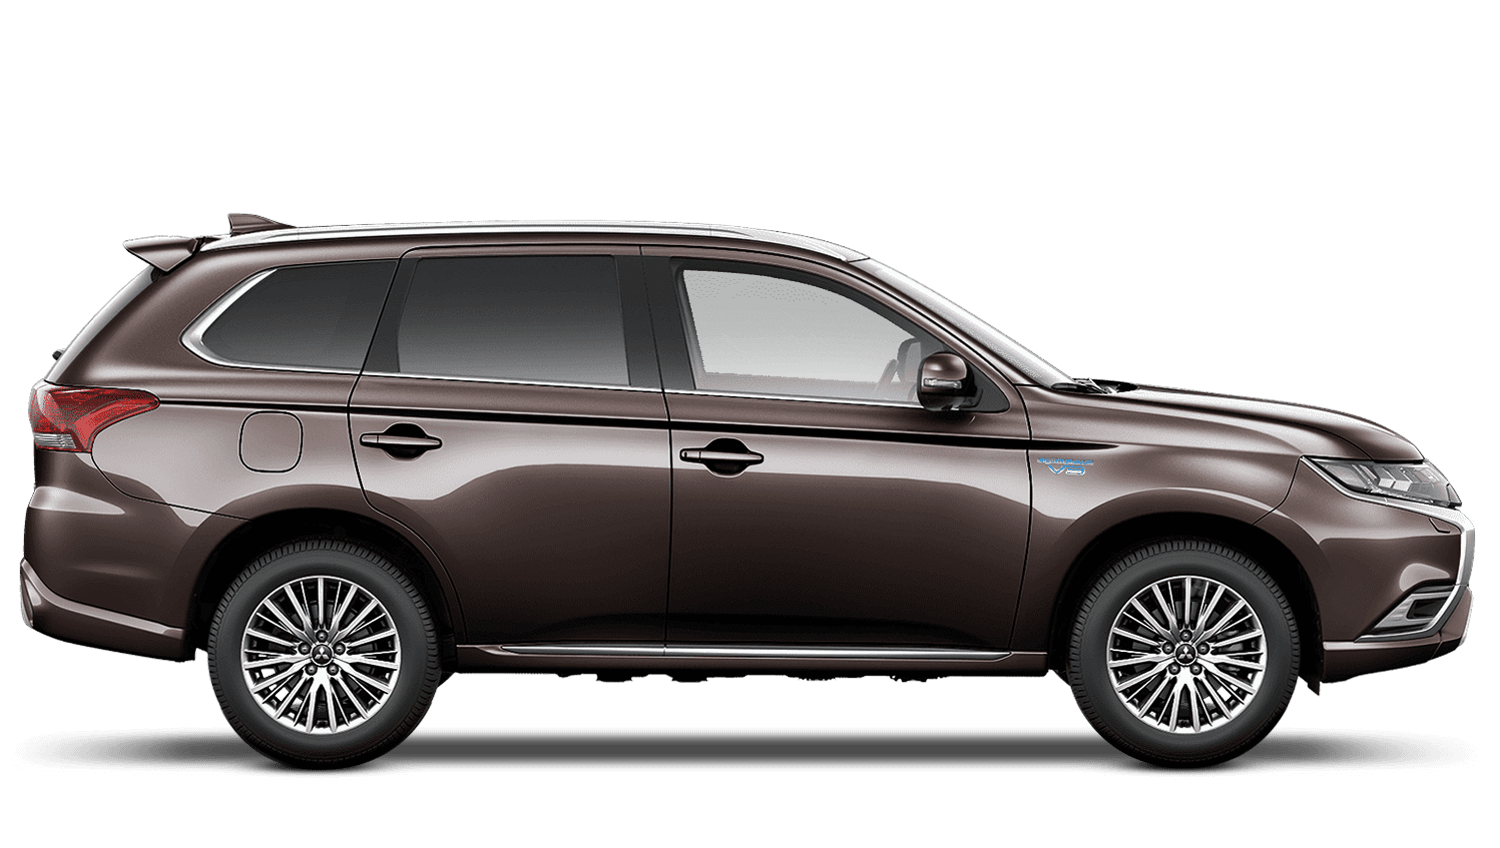 Granite Brown Mitsubishi Outlander PHEV